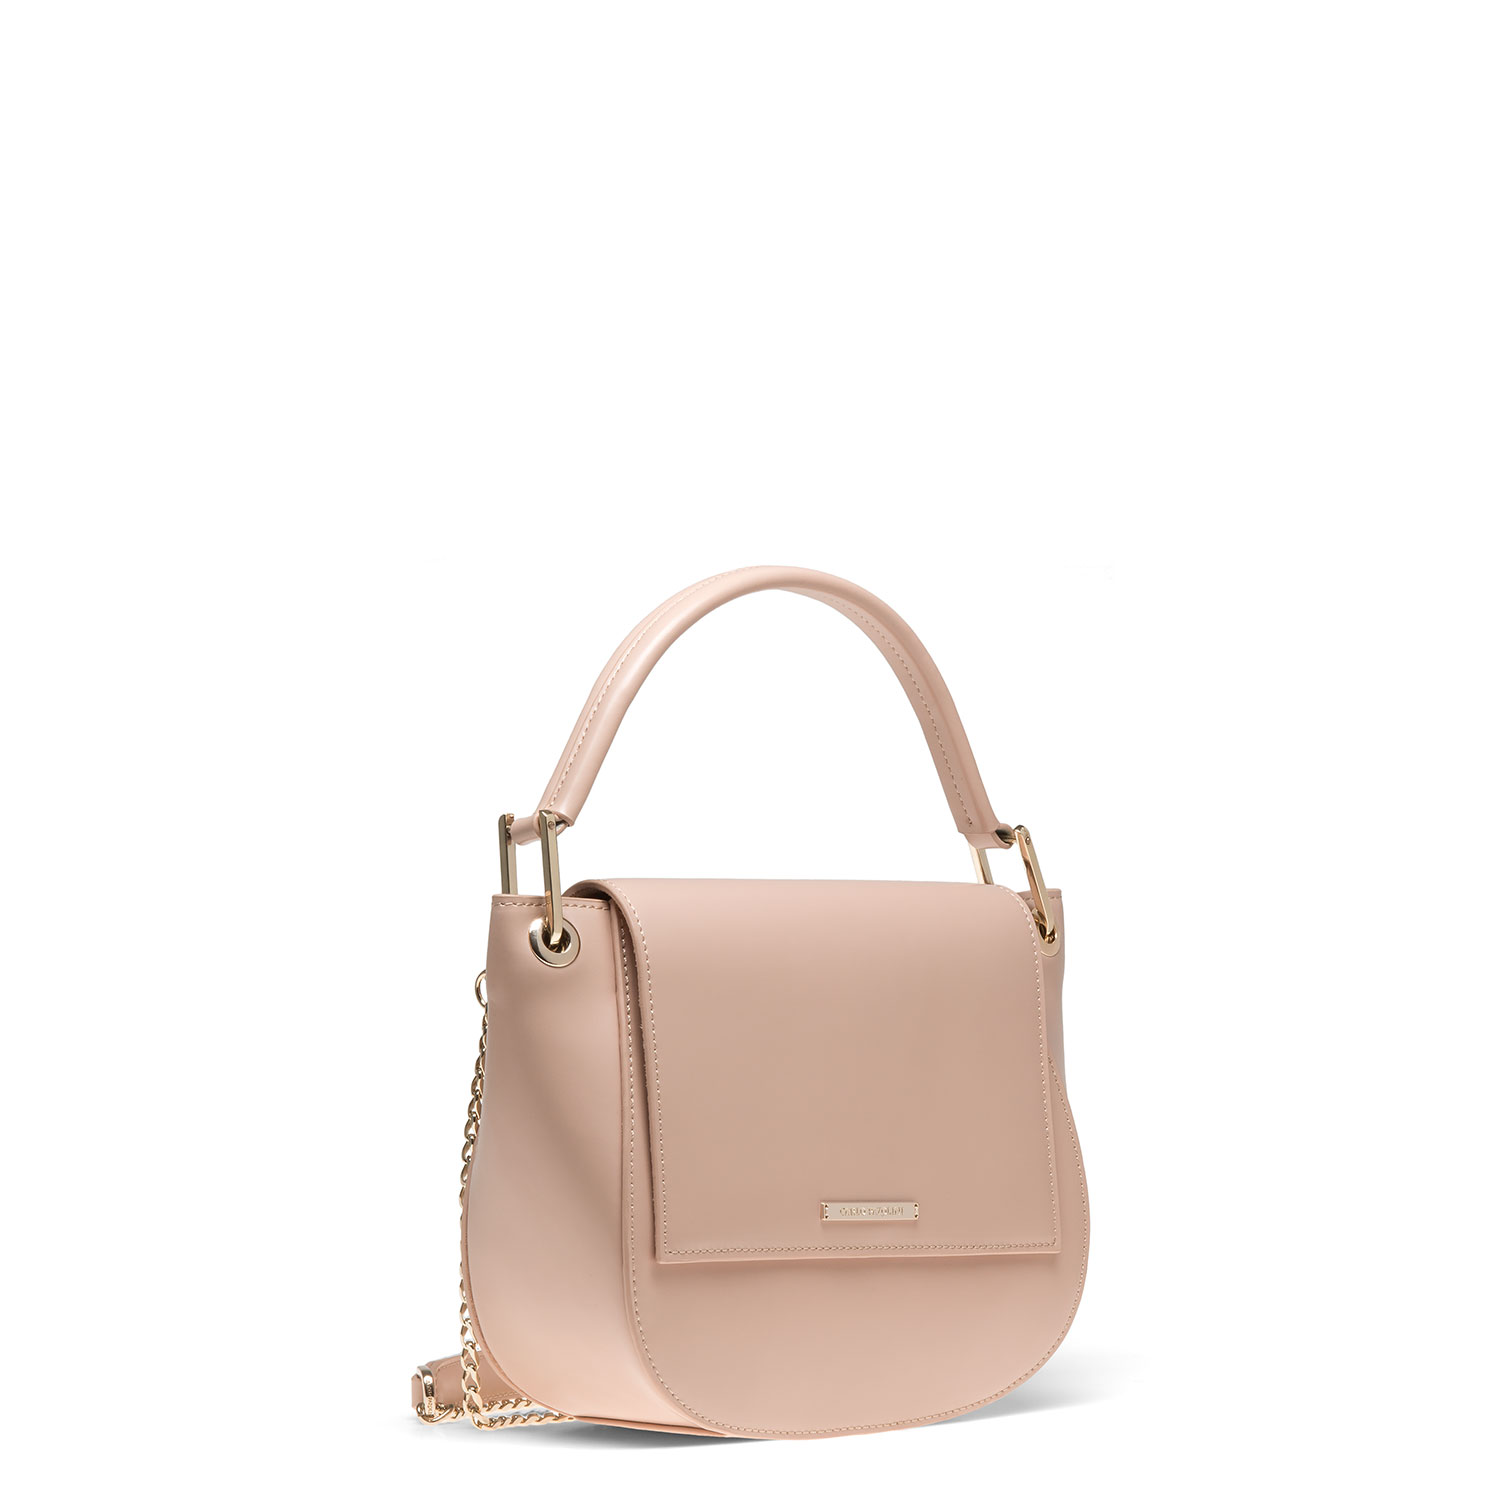 Women's bag CARLO PAZOLINI PS-N2636-3